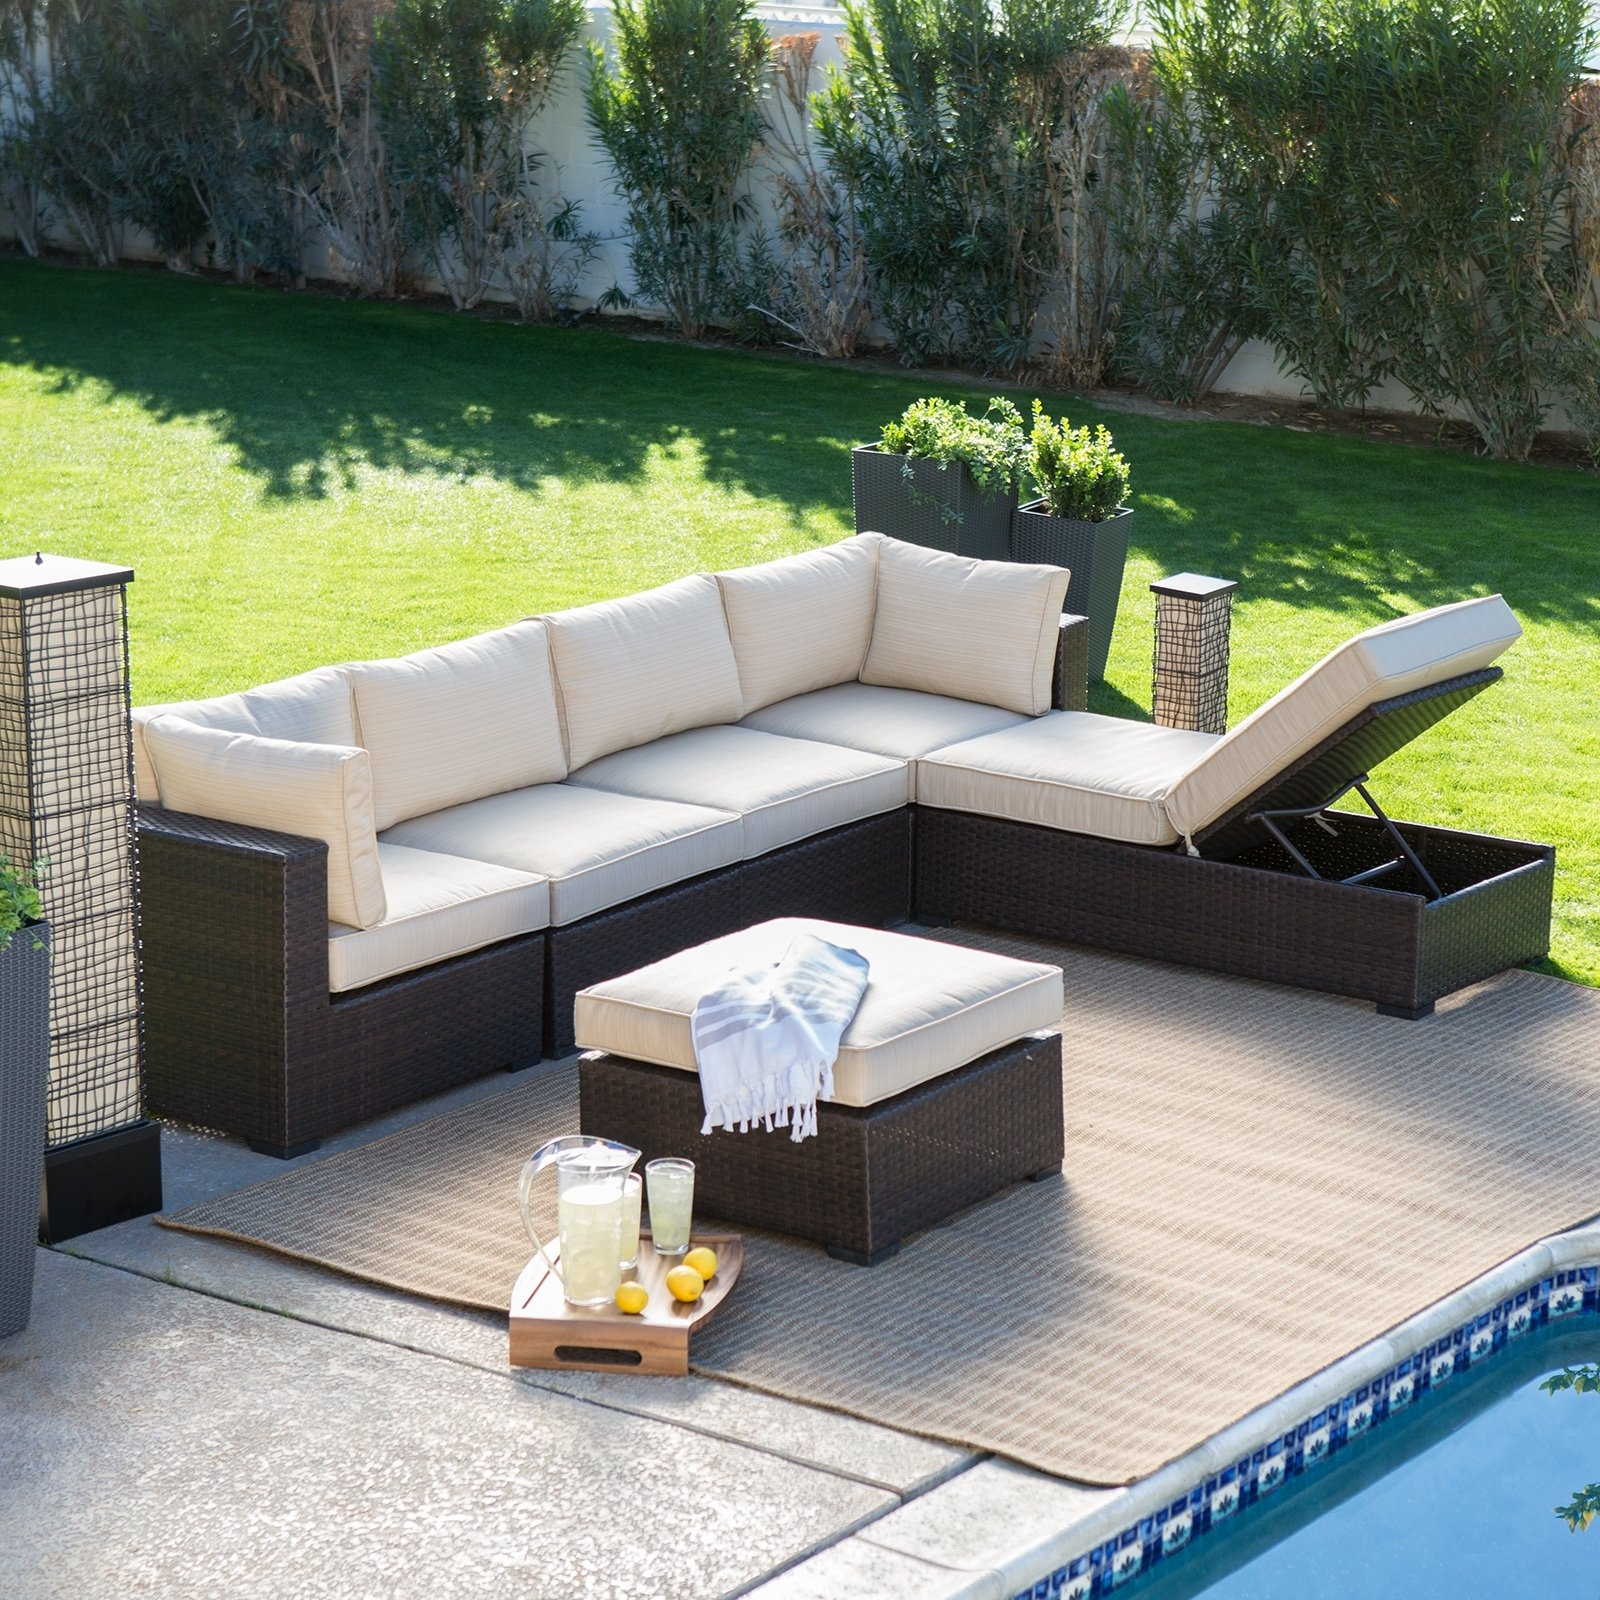 Conversation Patio Sets With Outdoor Sectionals For Well Known Patio : Outdoor Dining Sets Walmart Design Of Outdoor Patio Table (View 11 of 20)